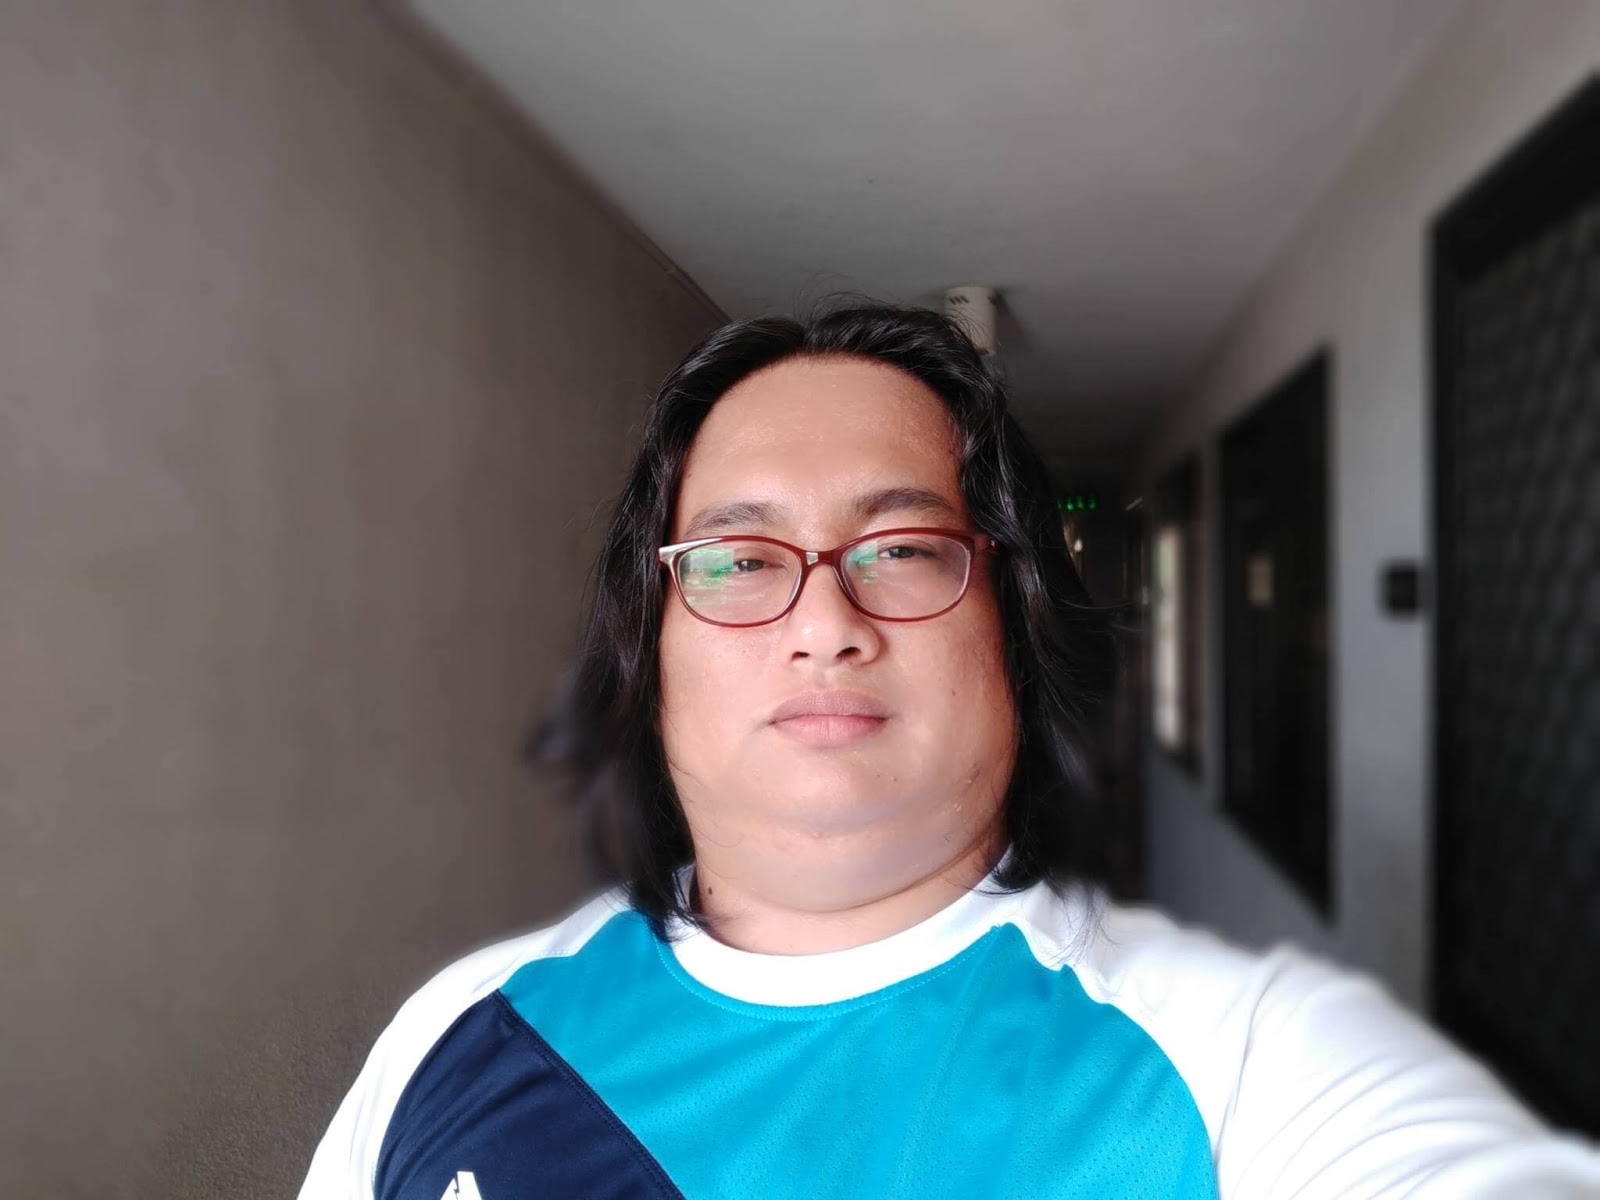 OPPO F3 Plus Camera Sample - Selfie with Blur Mode